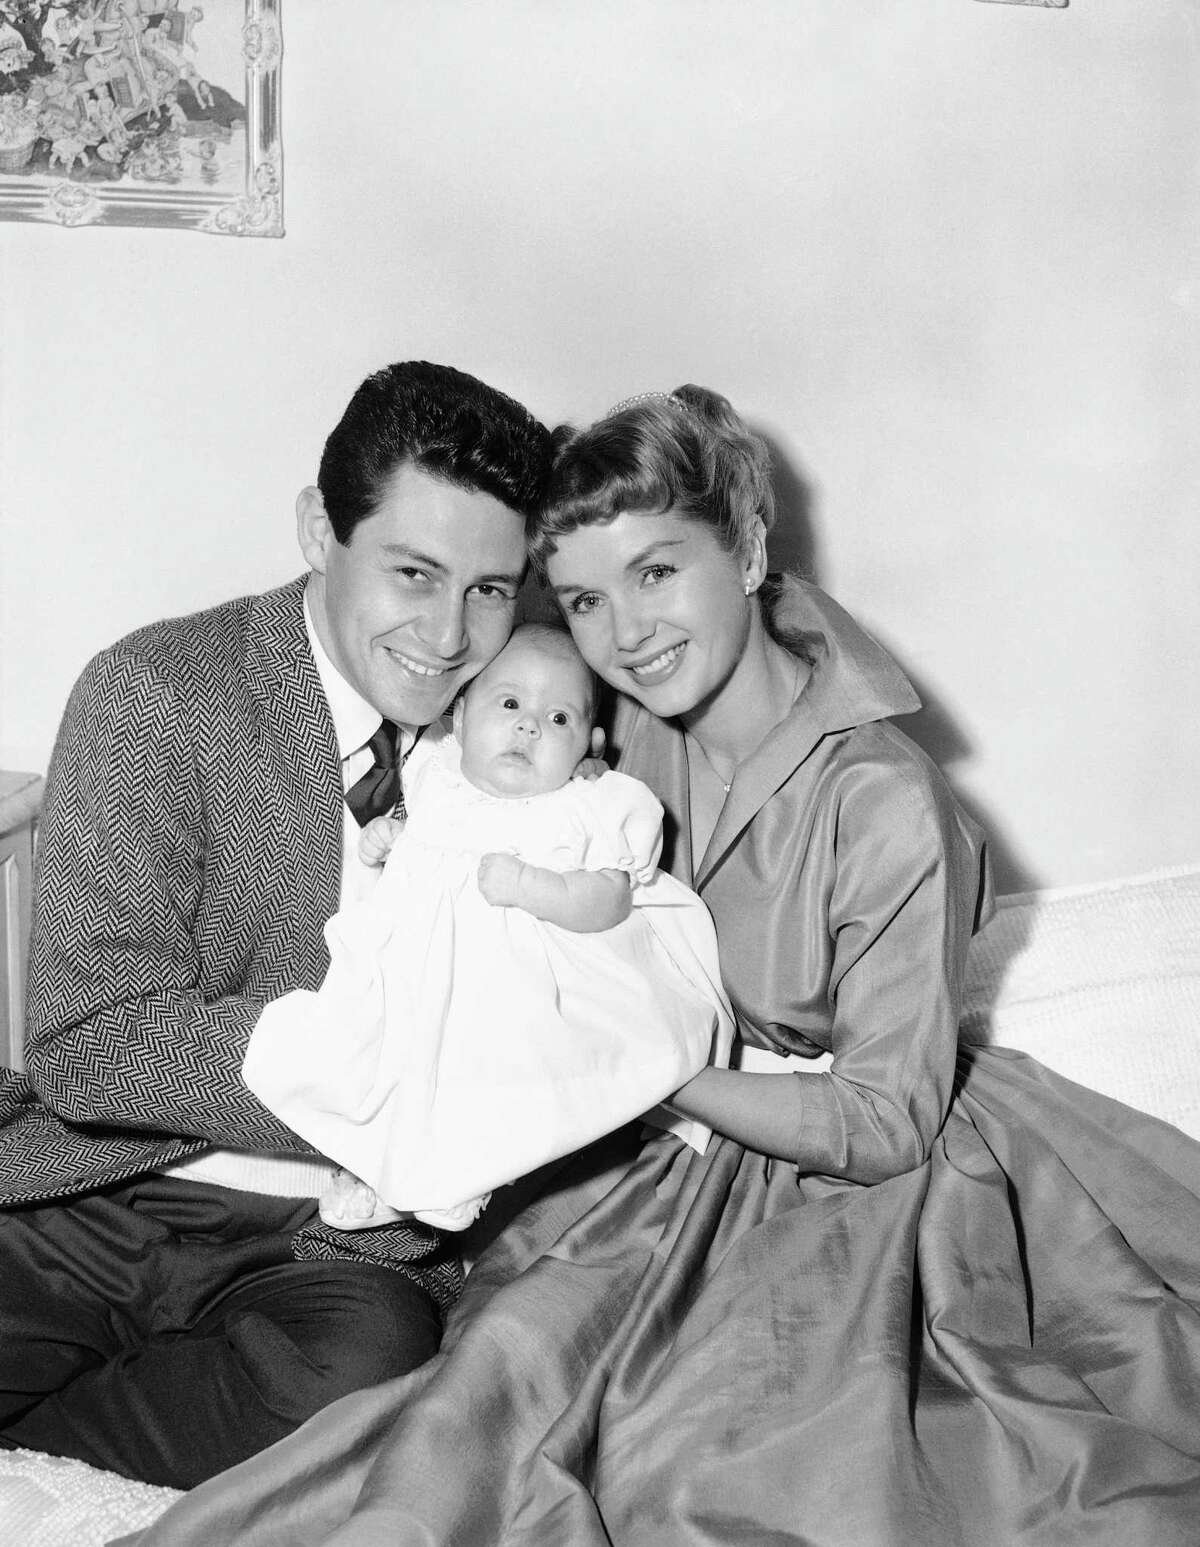 Eddie Fisher and Debbie Reynolds appear before the camera in their real roles of happy parents as they and their young daughter, Carrie Frances Fisher, pose for their first family group picture, in Hollywood, Jan. 2, 1957. Carrie Frances was born Oct.21, 1956. The young stars, appropriately, are appearing in a film titled